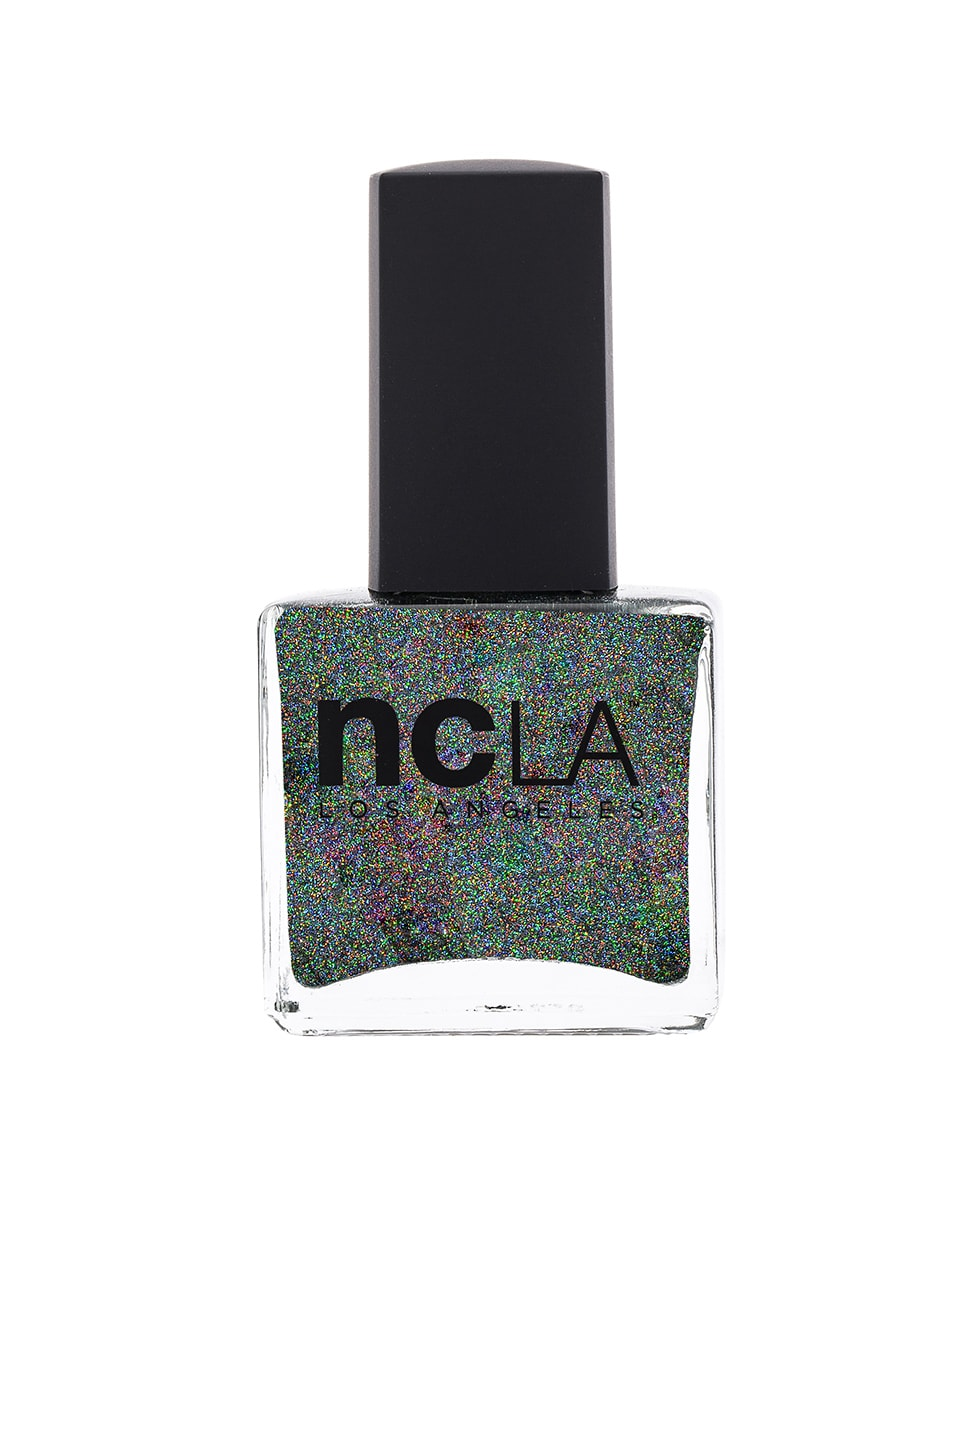 NCLA You Can't Swim With Us HOLOS Lacquer in The Last Siren